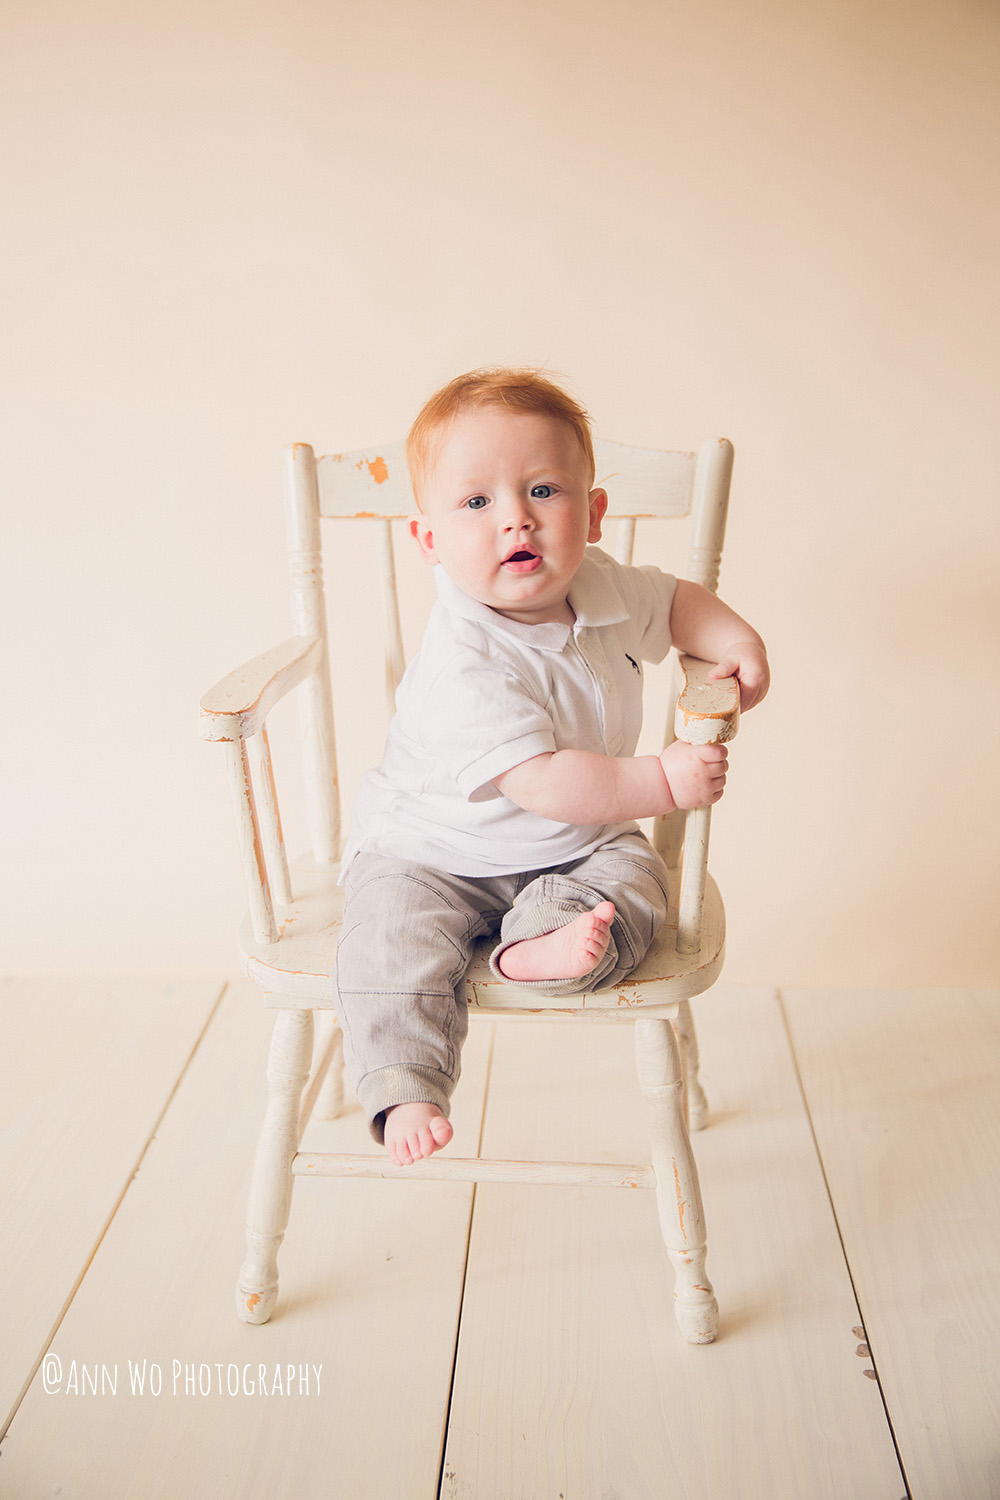 web-baby-photography-london-ann-wo-6-month-boy-sitter-session-01.JPG